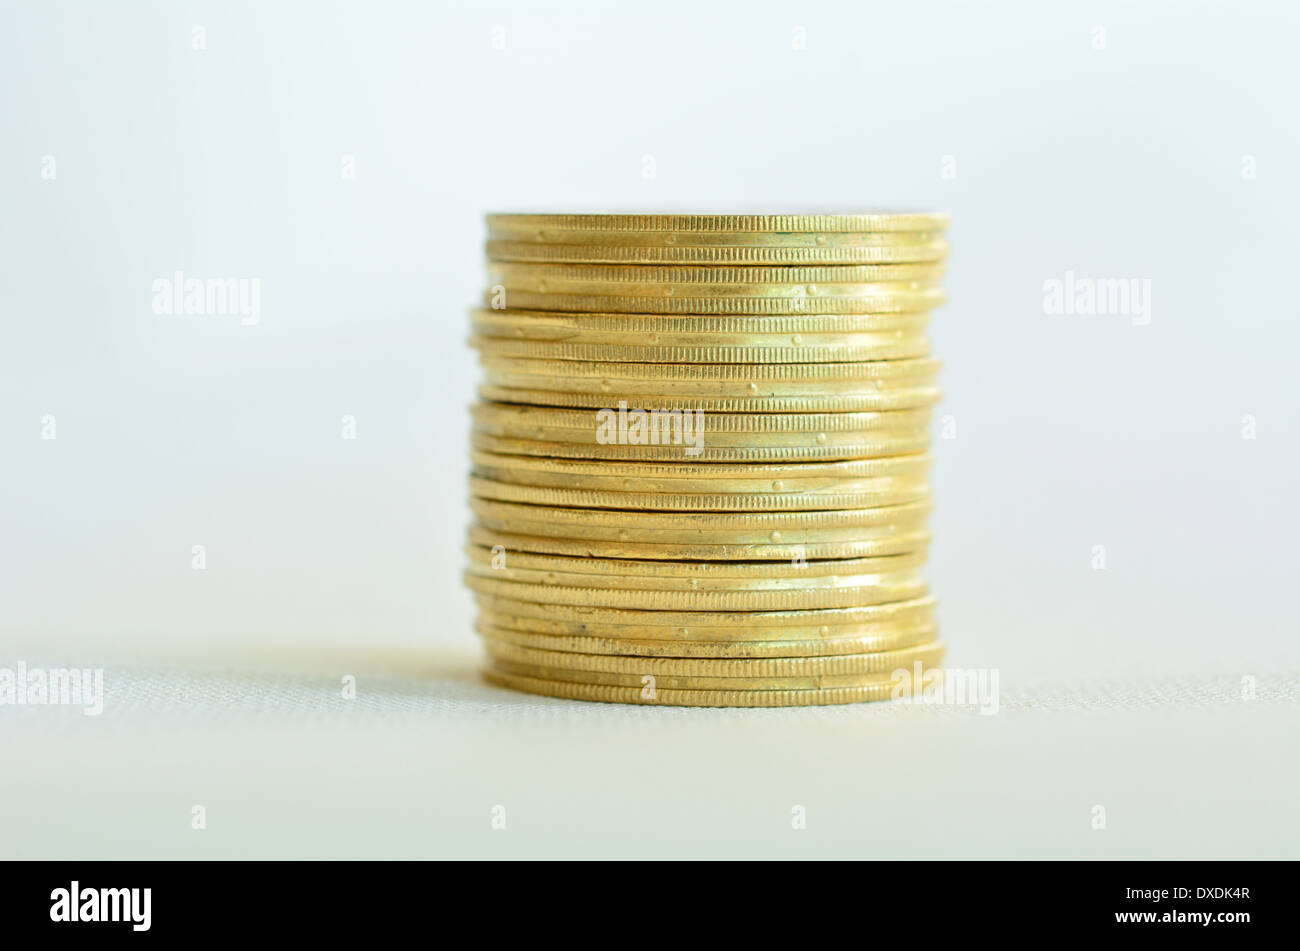 One Golden gold coins stack isolated on white background. Concept photo of bank, money, banking, finance, economy, saving,loans - Stock Image